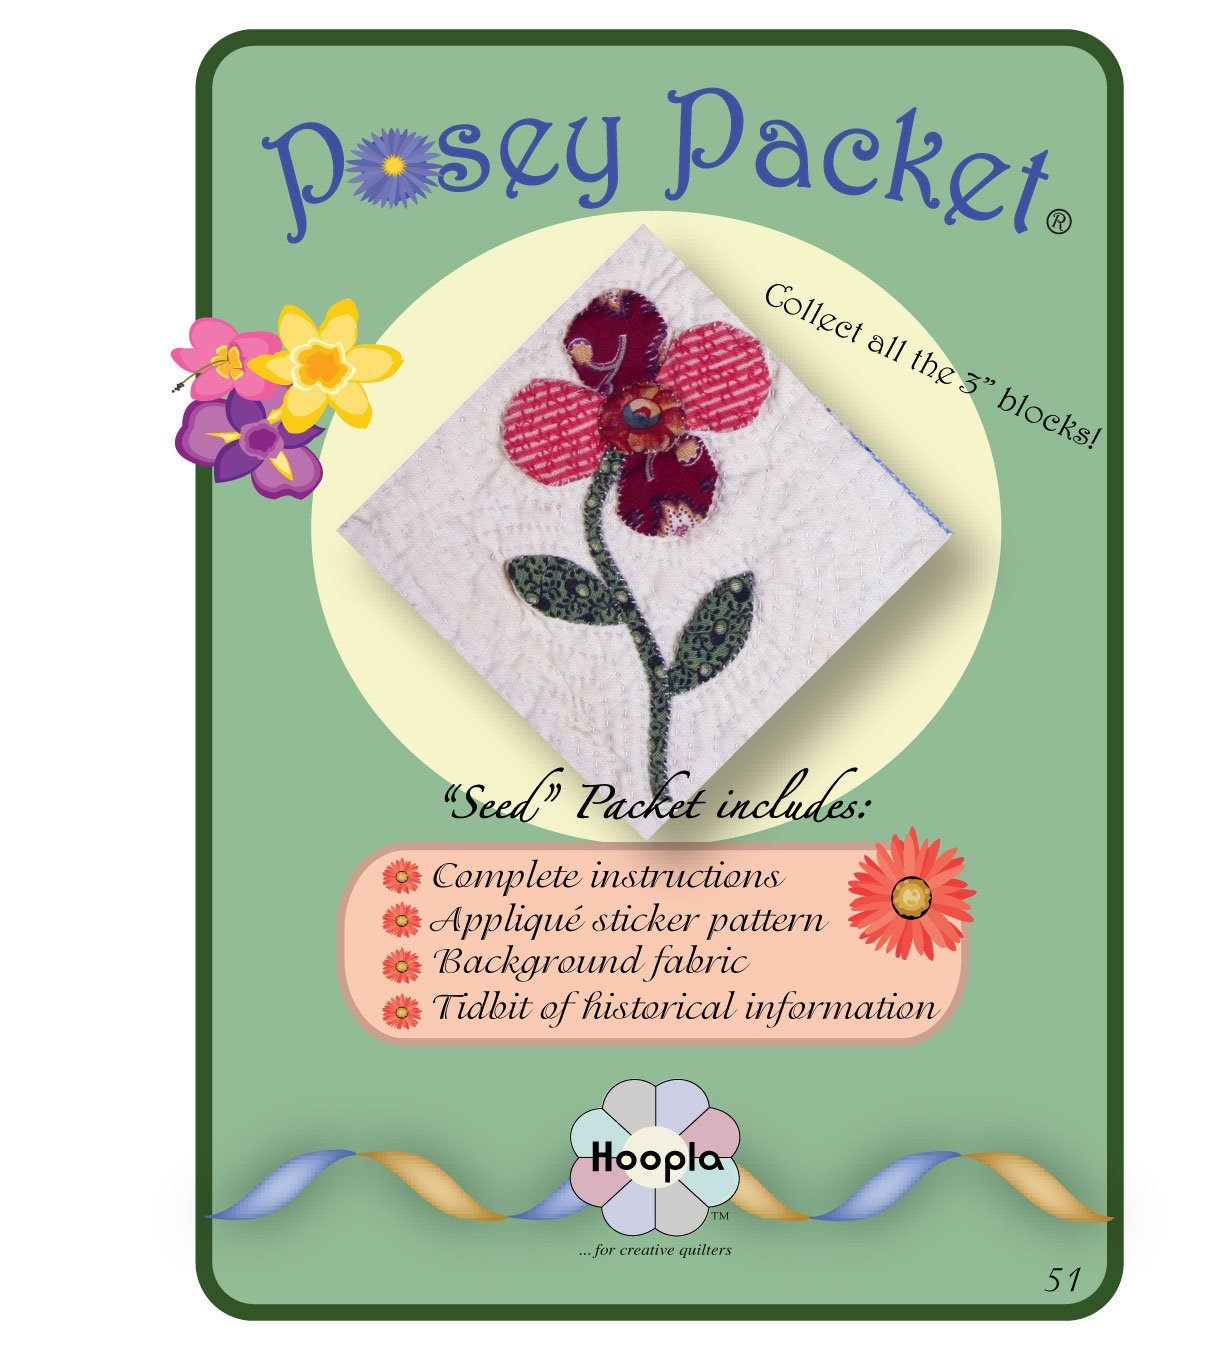 Posey Packet 51